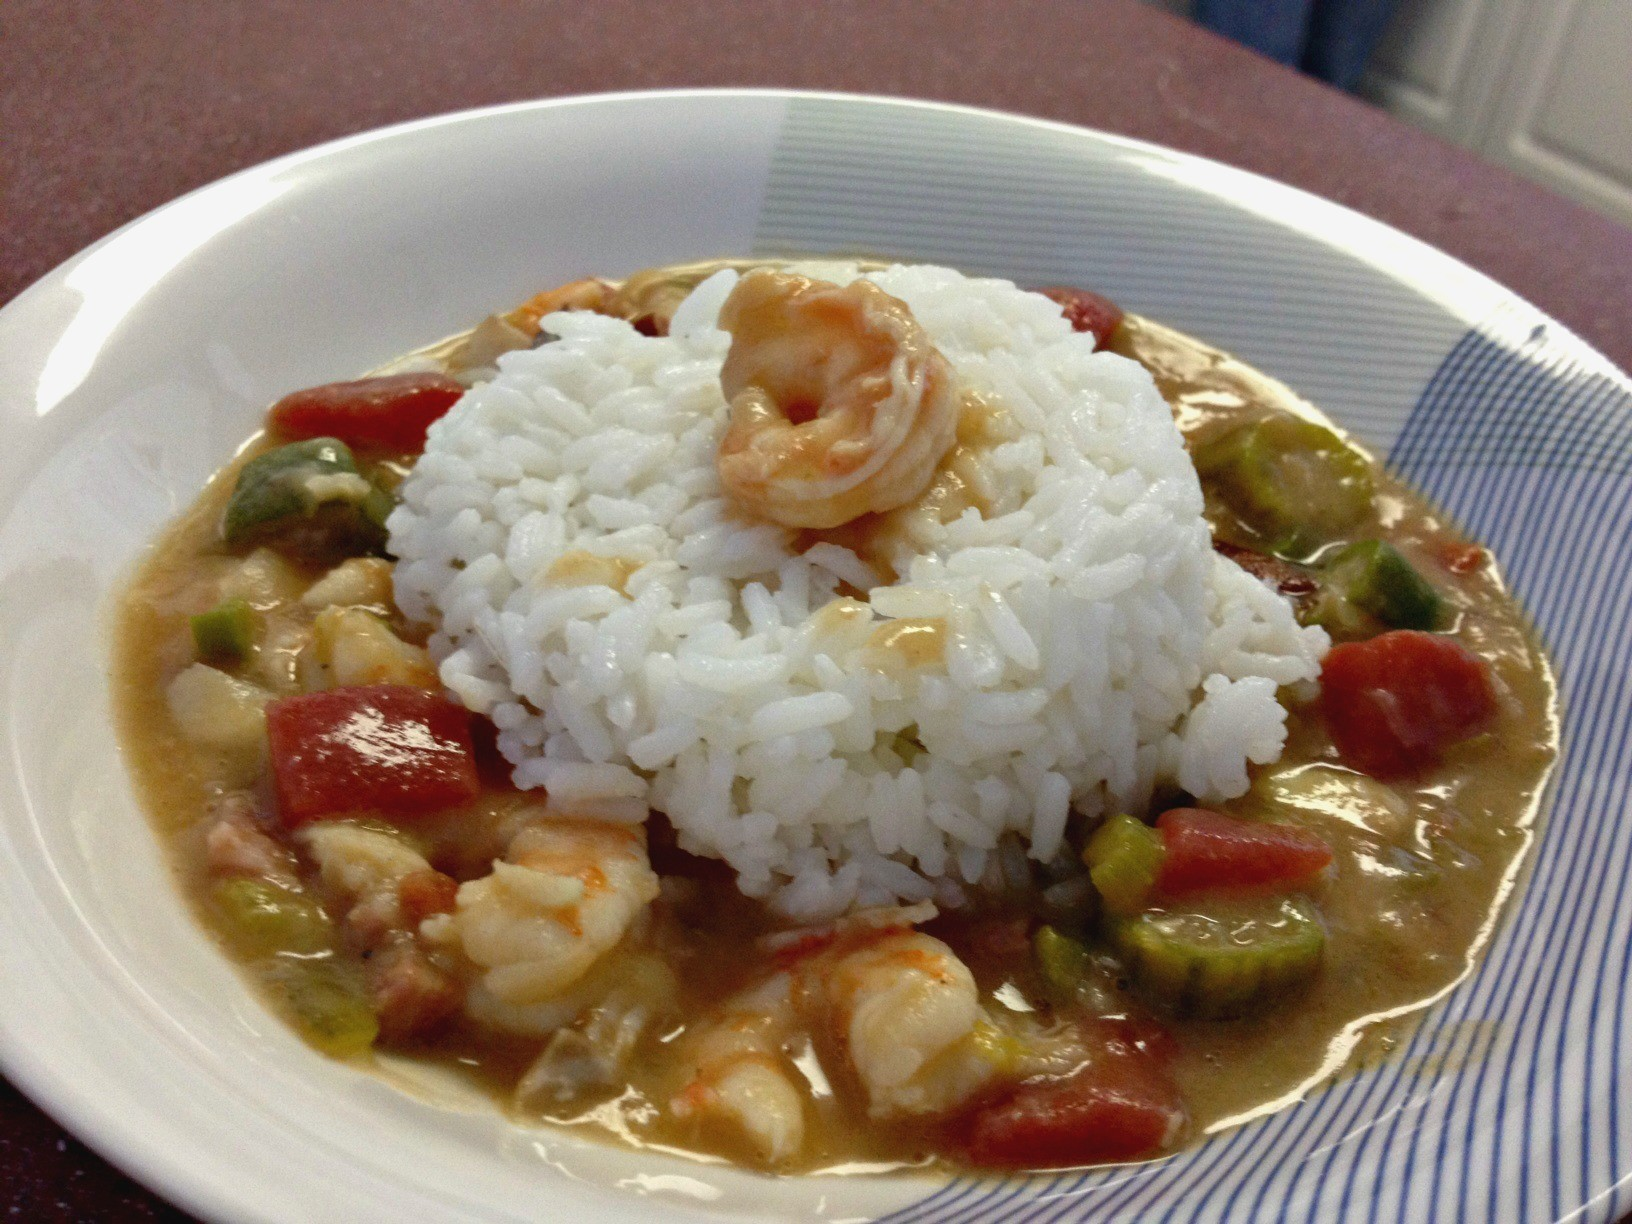 Carolina Gumbaya is topped with white rice and is in a white bowl